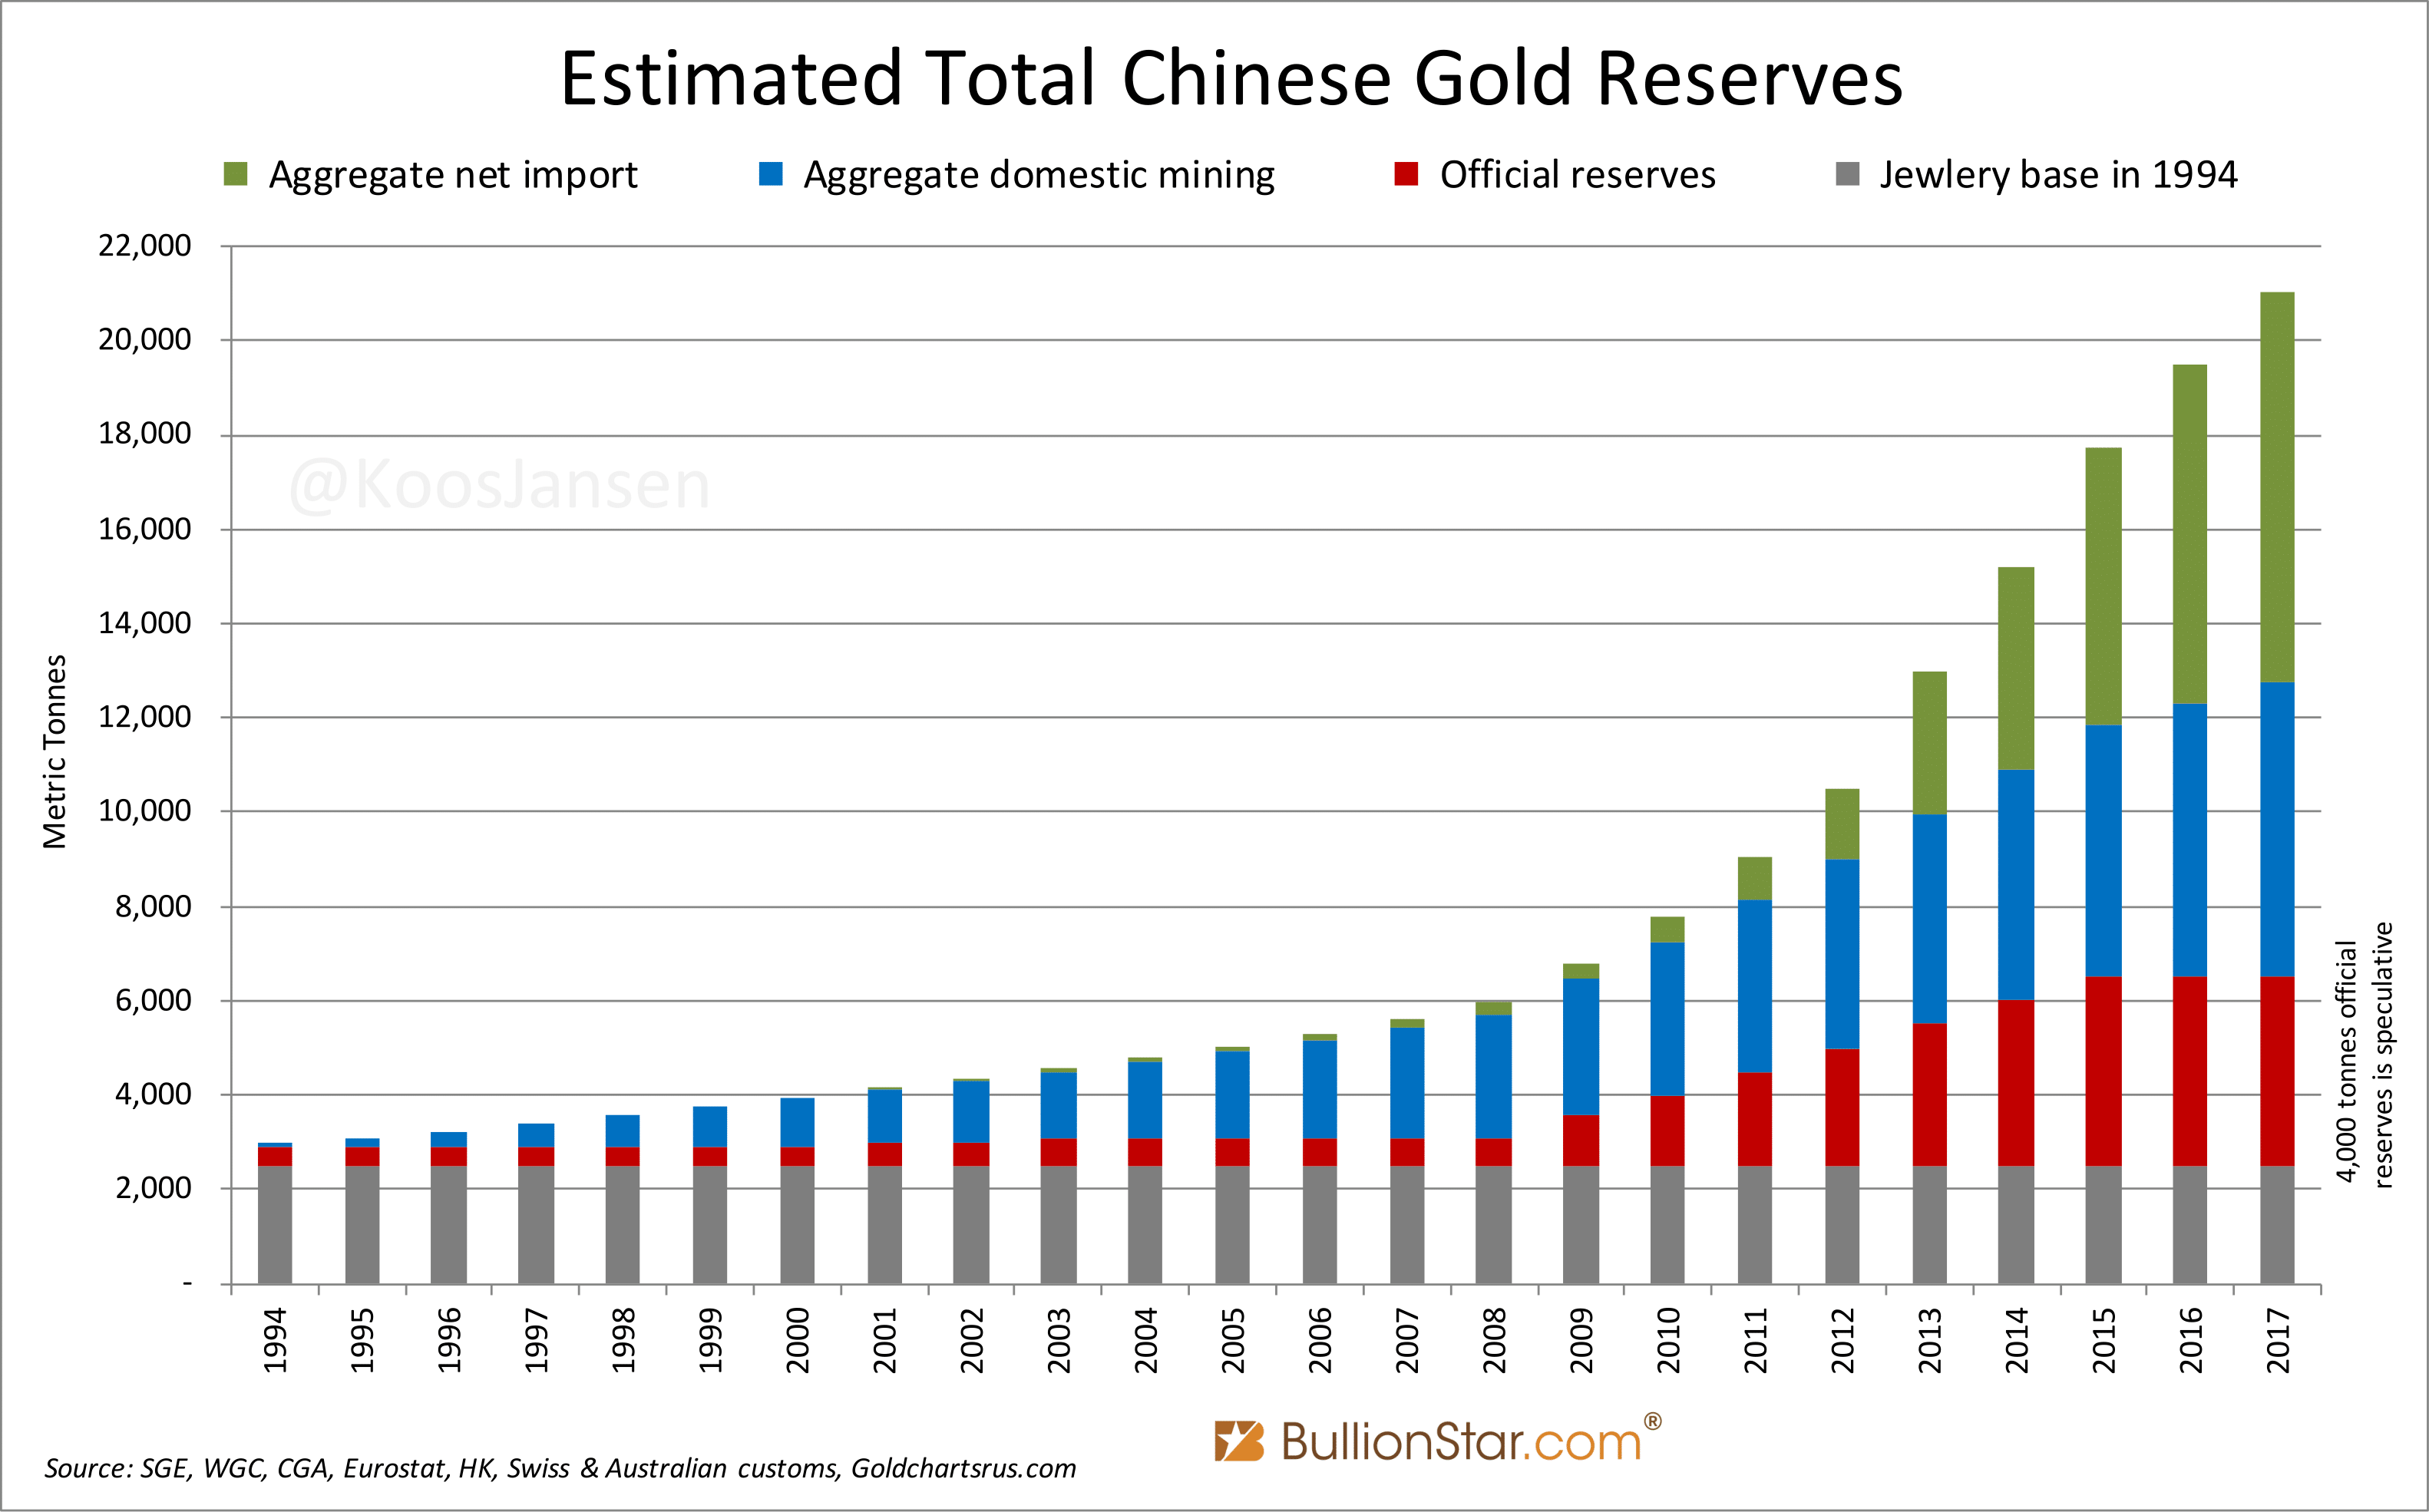 China Gold Reserve Estimates as of 2017